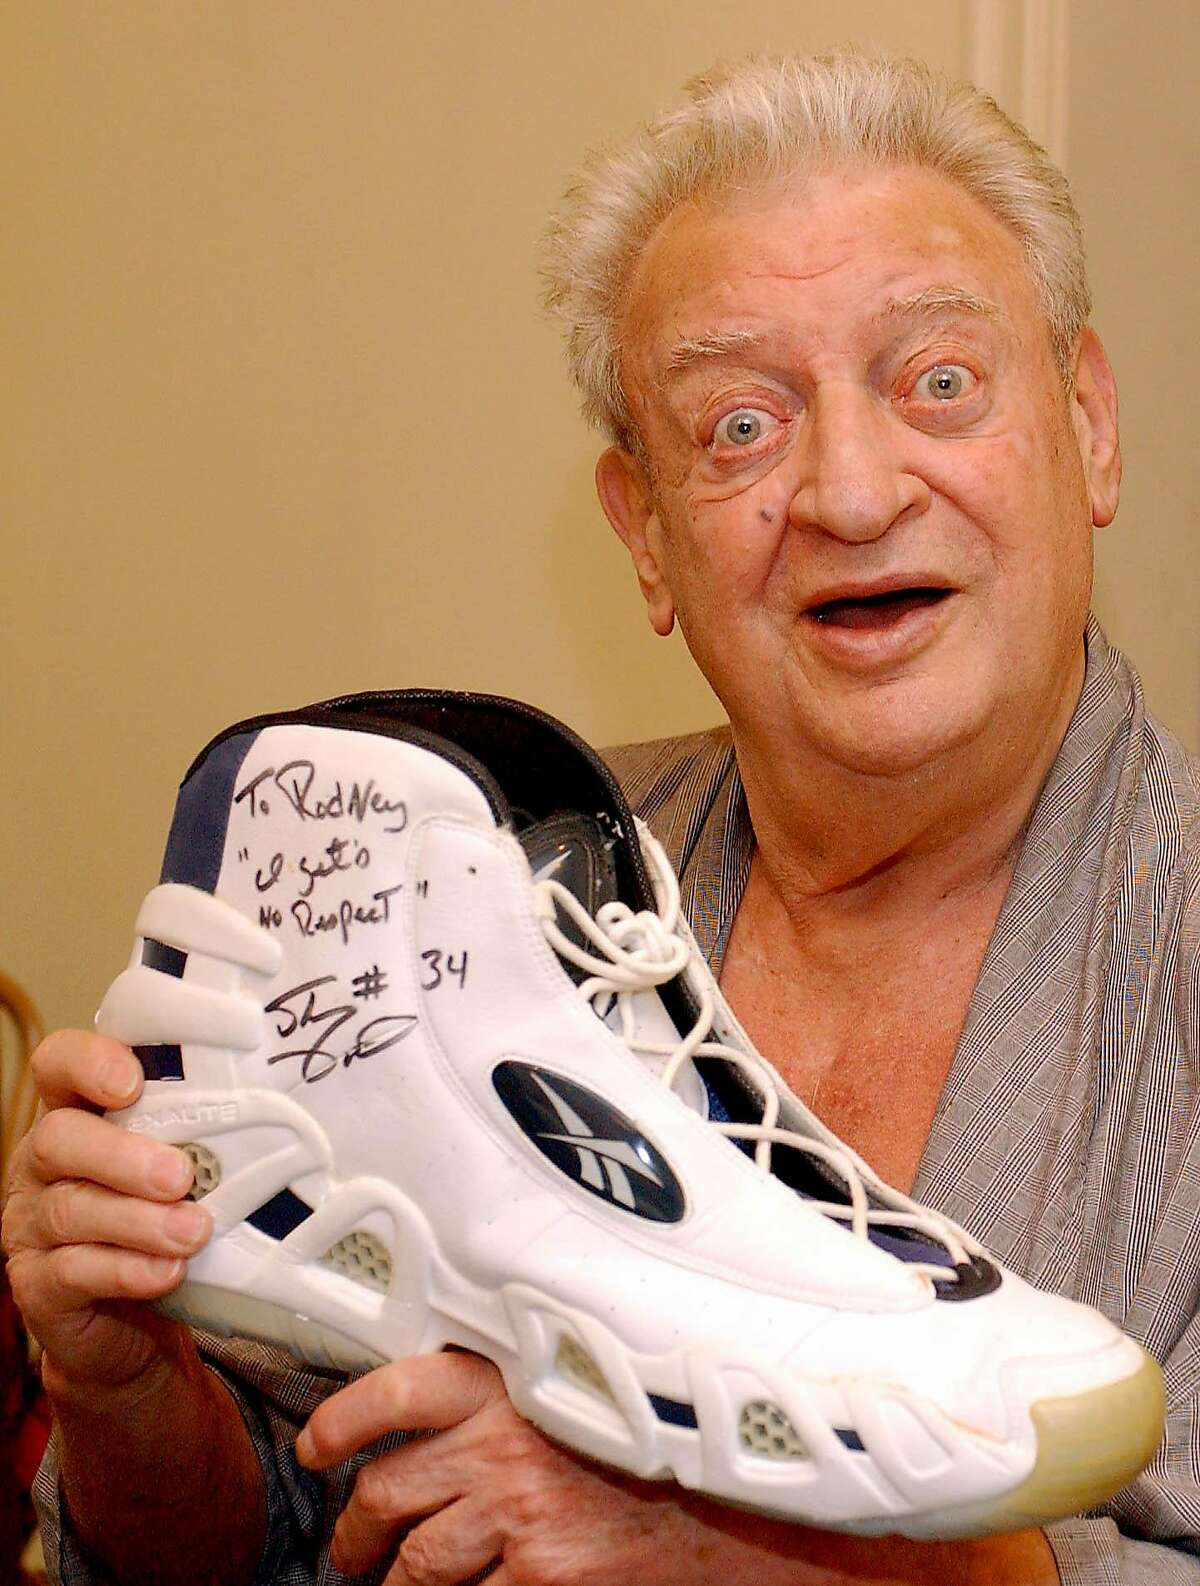 ** FILE ** Comedian Rodney Dangerfield holds up a shoe autographed by Shaquille O'Neal that says